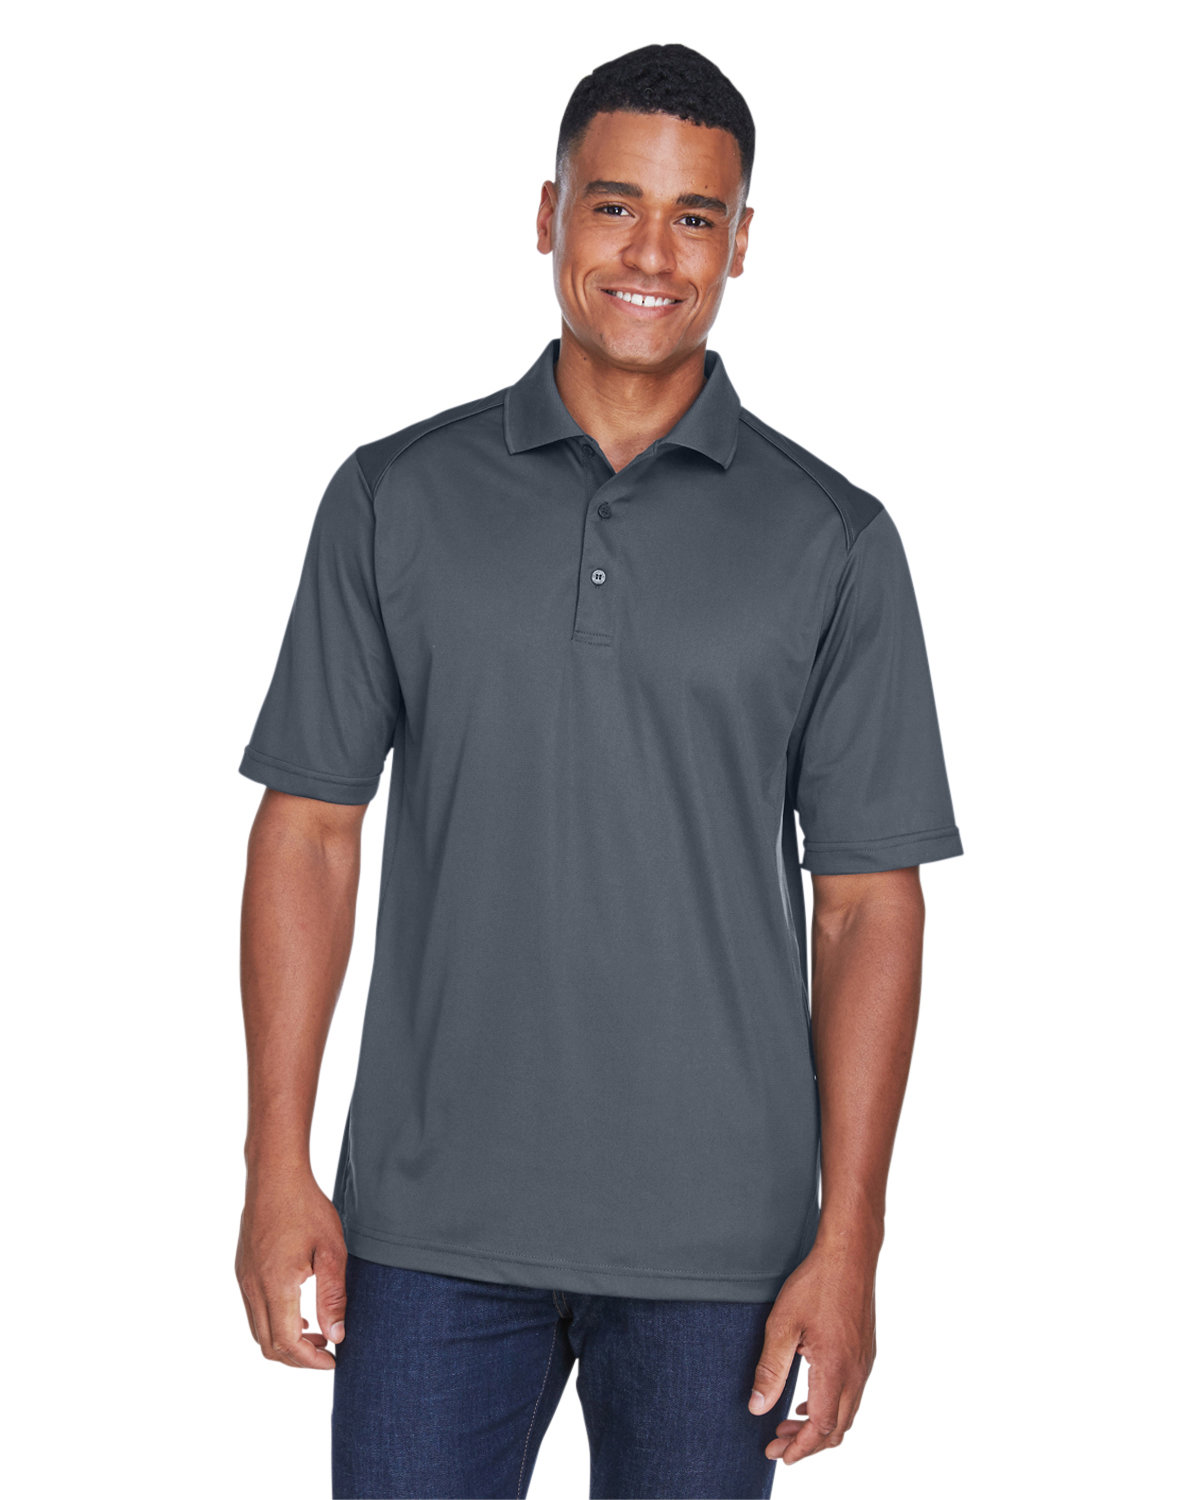 Extreme Men's Eperformance™ Shield Snag Protection Short-Sleeve Polo CARBON